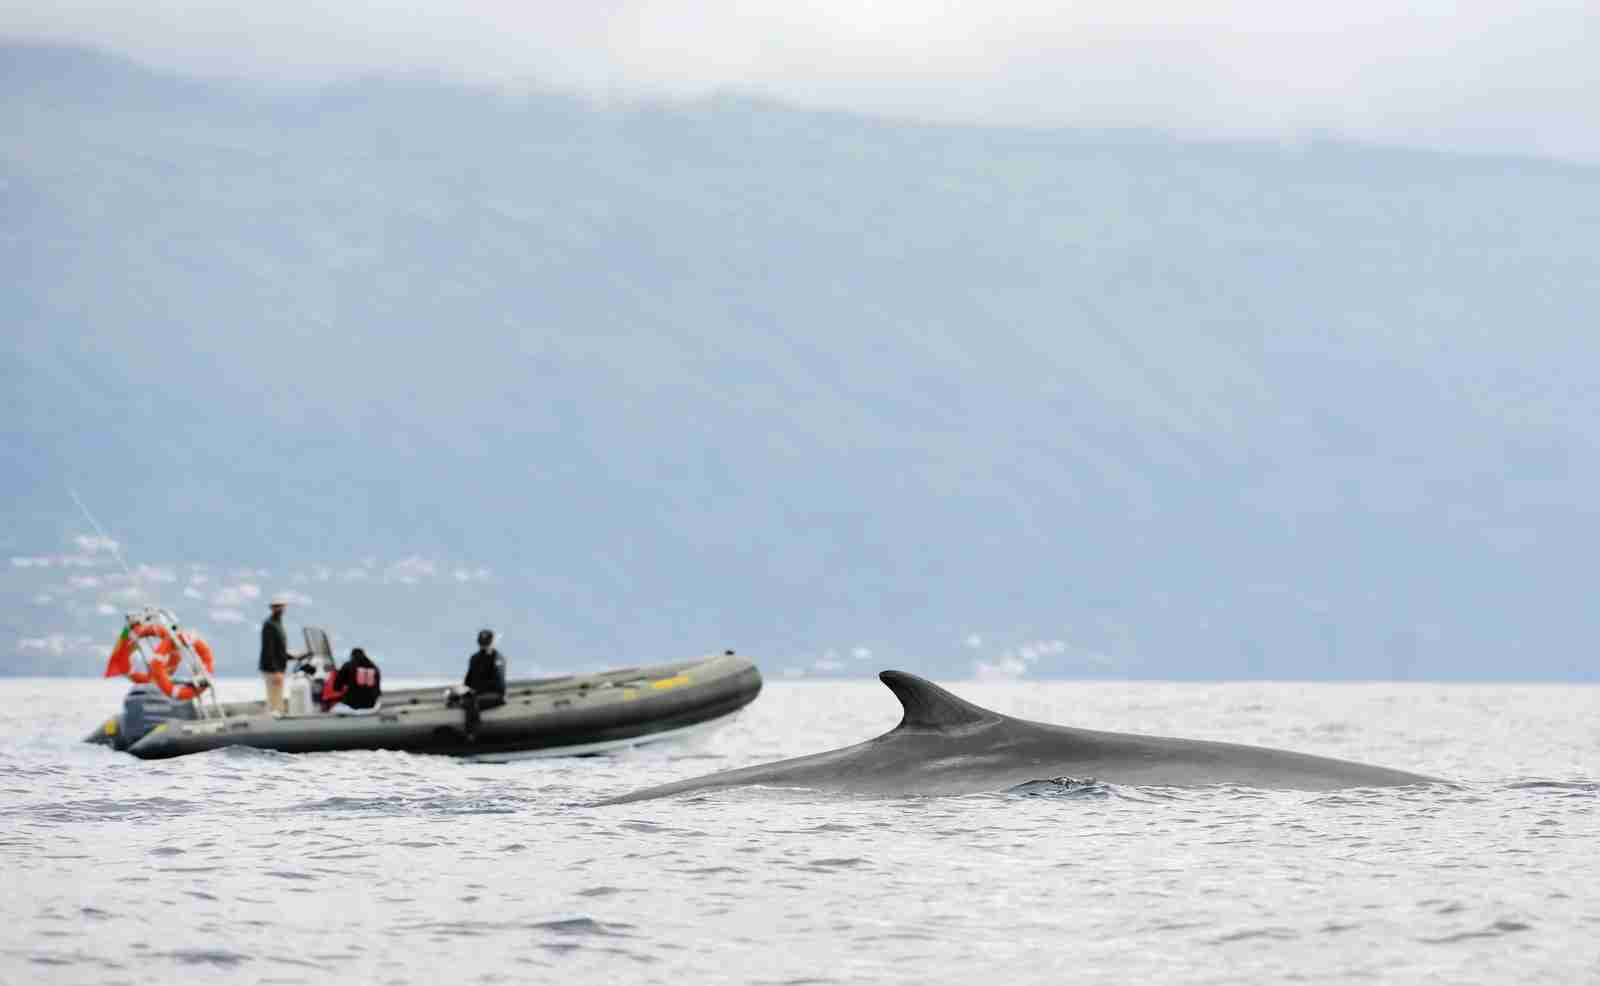 Whale-watching in the Azores. (Photo via Getty Images)